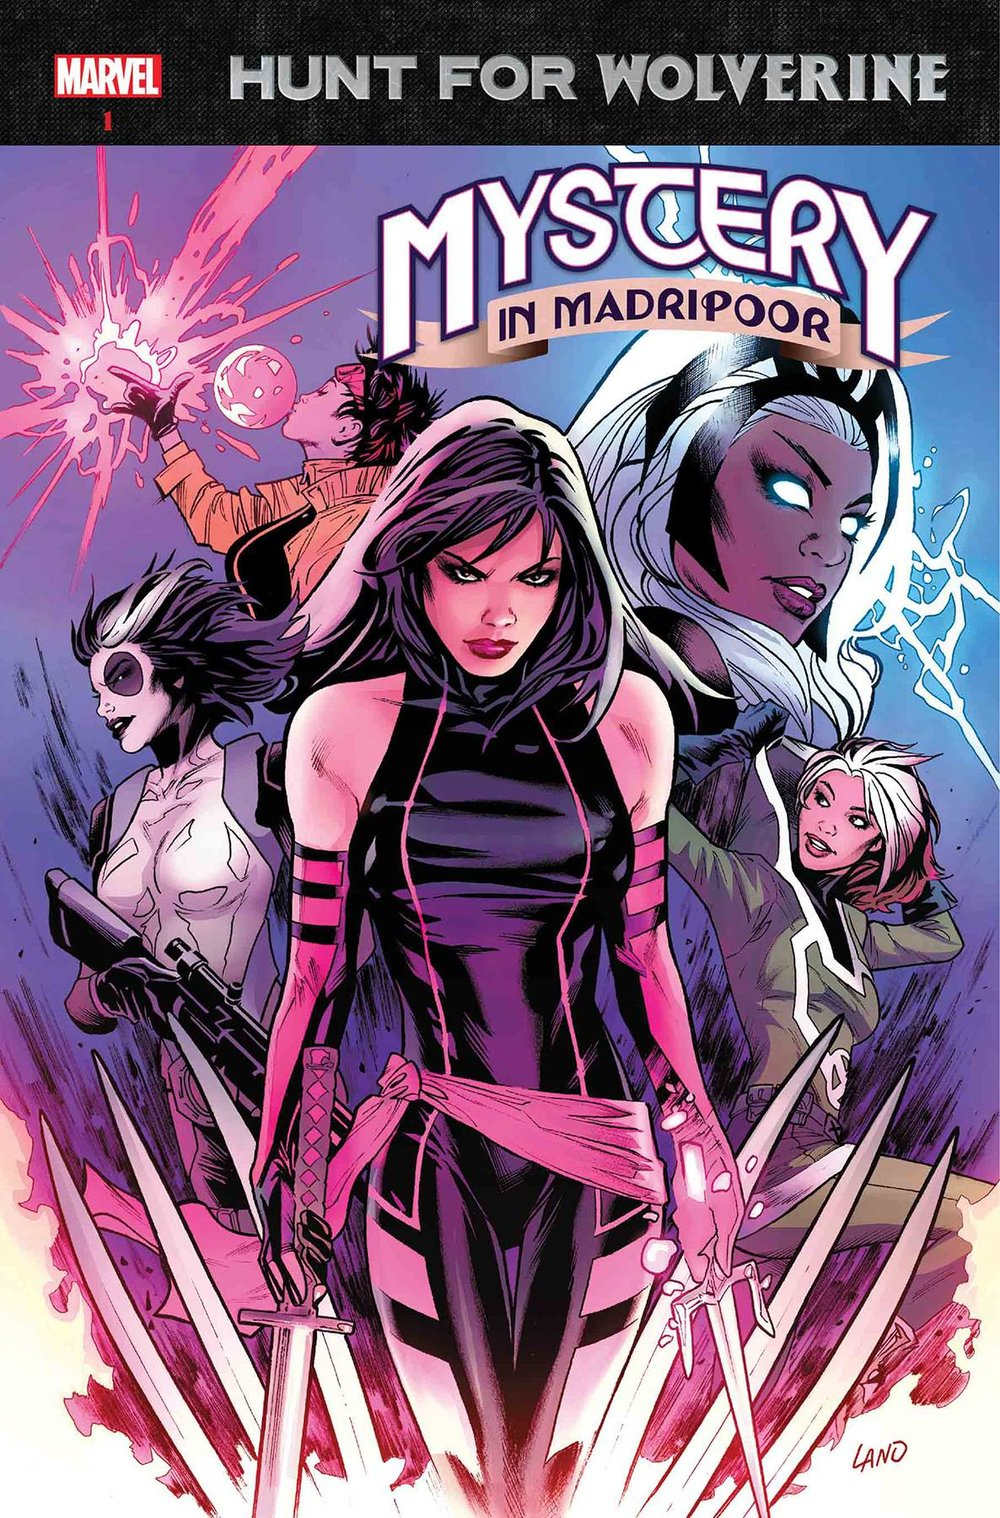 HUNT FOR WOLVERINE MYSTERY MADRIPOOR #1